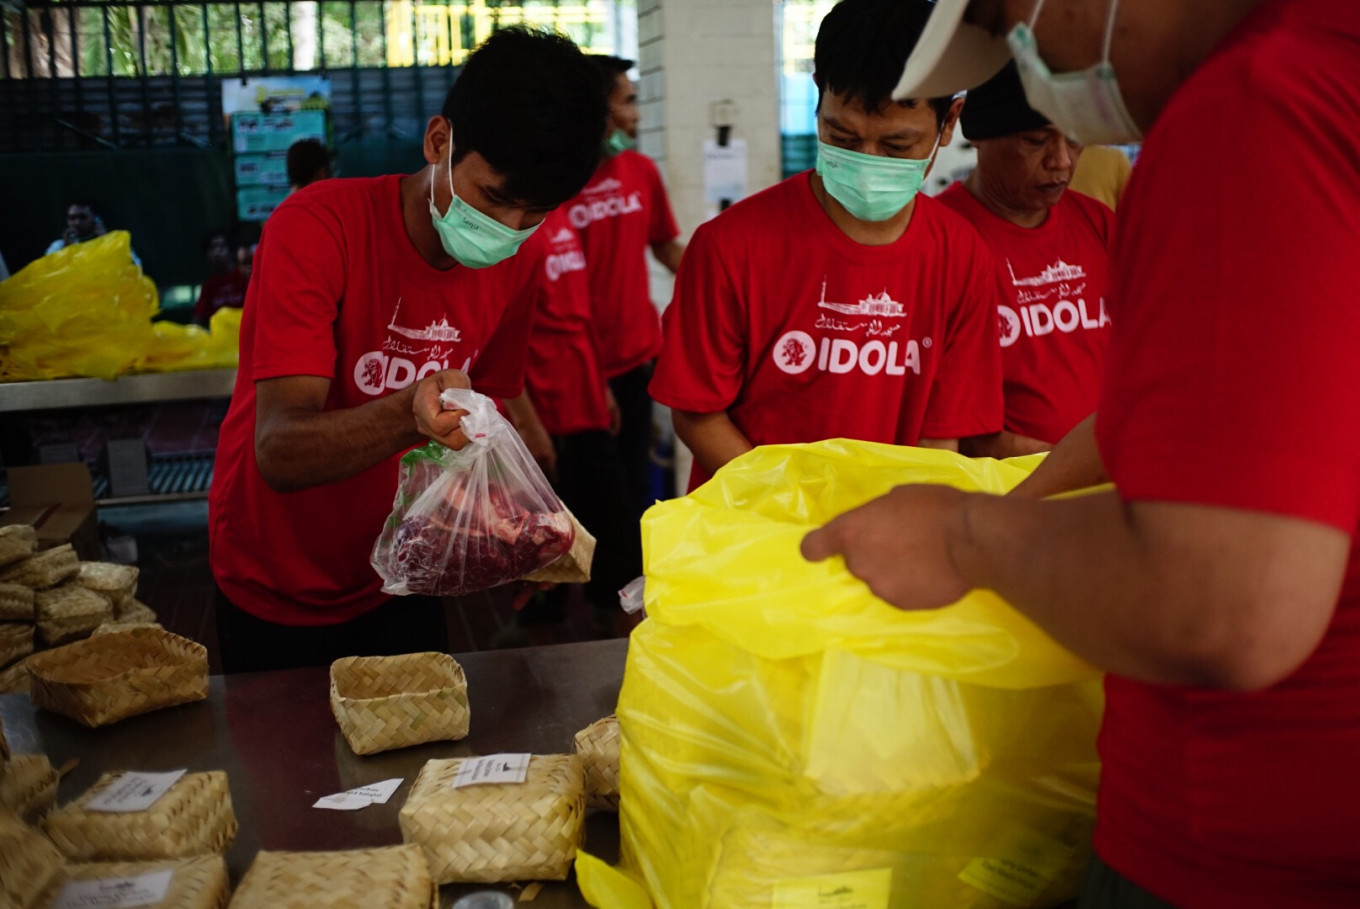 An attendant uses bamboo besek (containers made of plaited bamboo) to hold qurban (sacrificial) meat at Istiqlal Mosque in Central Jakarta on Sunday. The mosque chose not to use plastic bags to distribute its qurban meat for this year's Idul Adha. JP/Syelanita